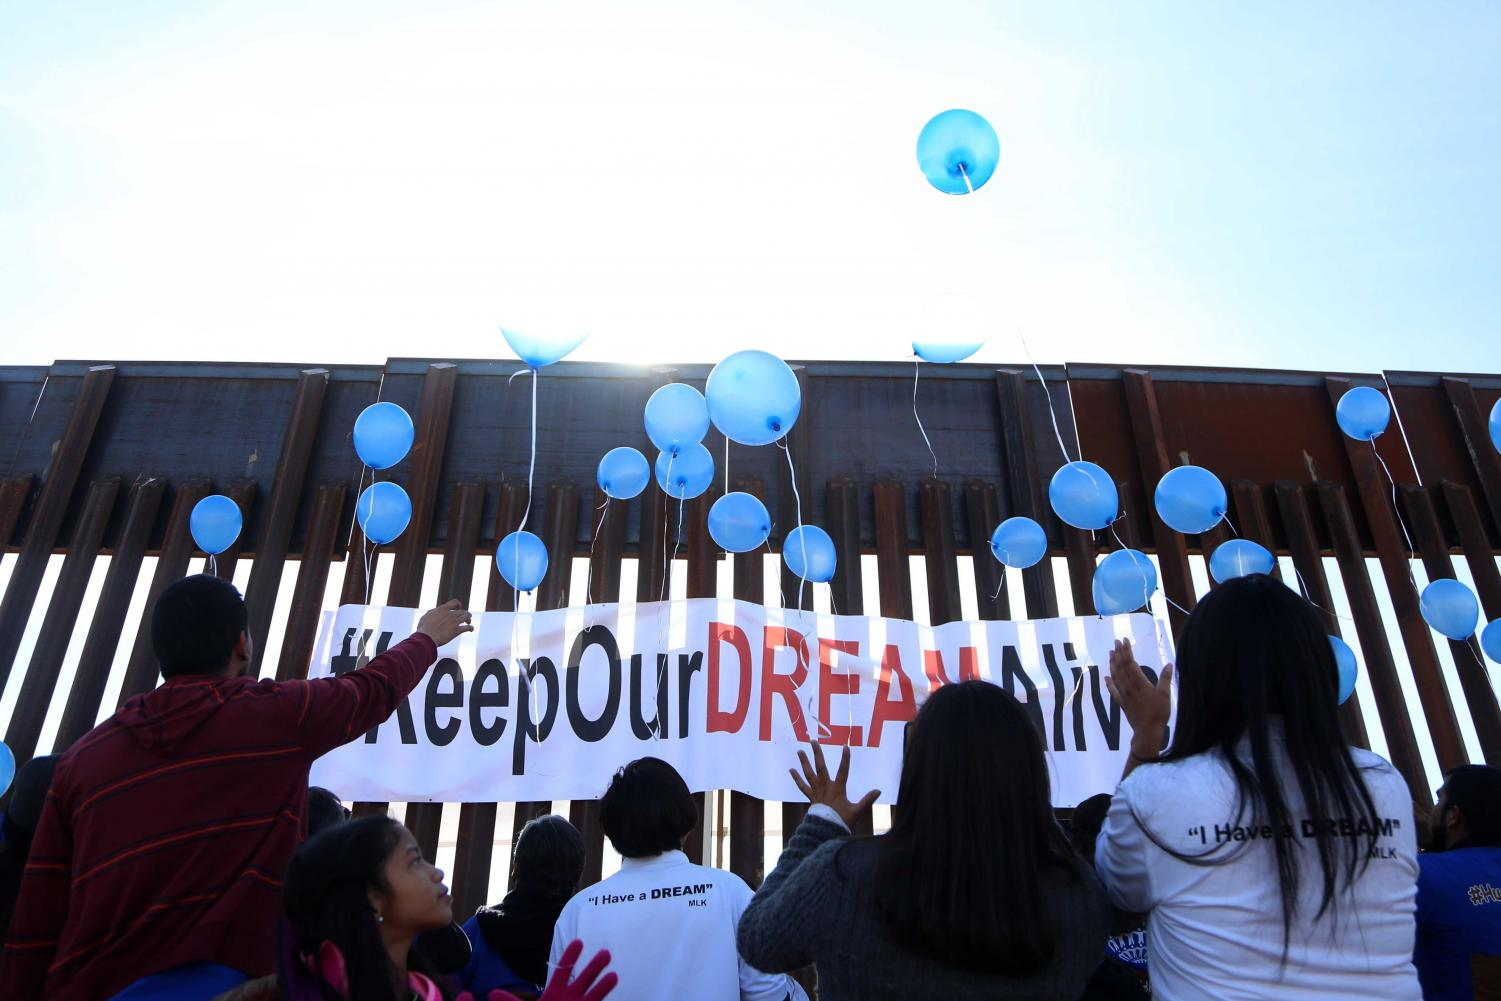 Families+release+blue+balloons+that+symbolize+that+the+walls+weren%27t+going+to+destroy+the+union+between+the+families+on+Sunday%2C+Dec.+10%2C+2017.